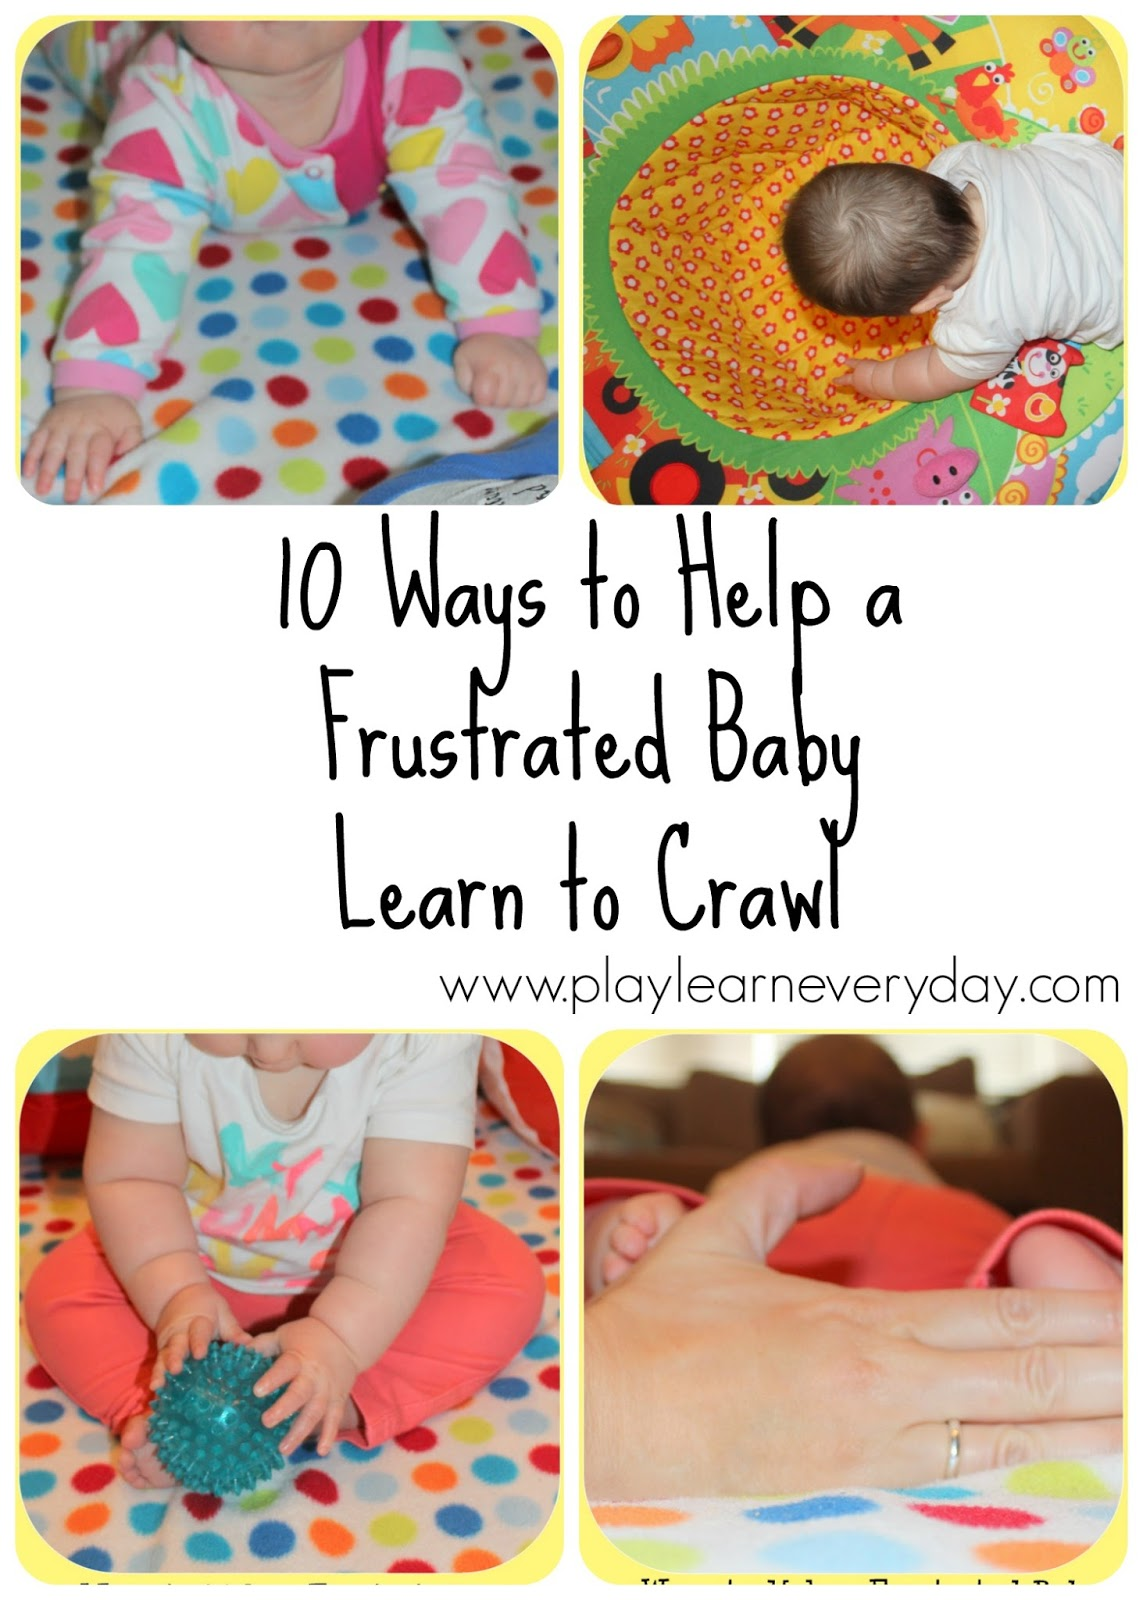 10 Ways to Help a Frustrated Baby Learn to Crawl - Play and